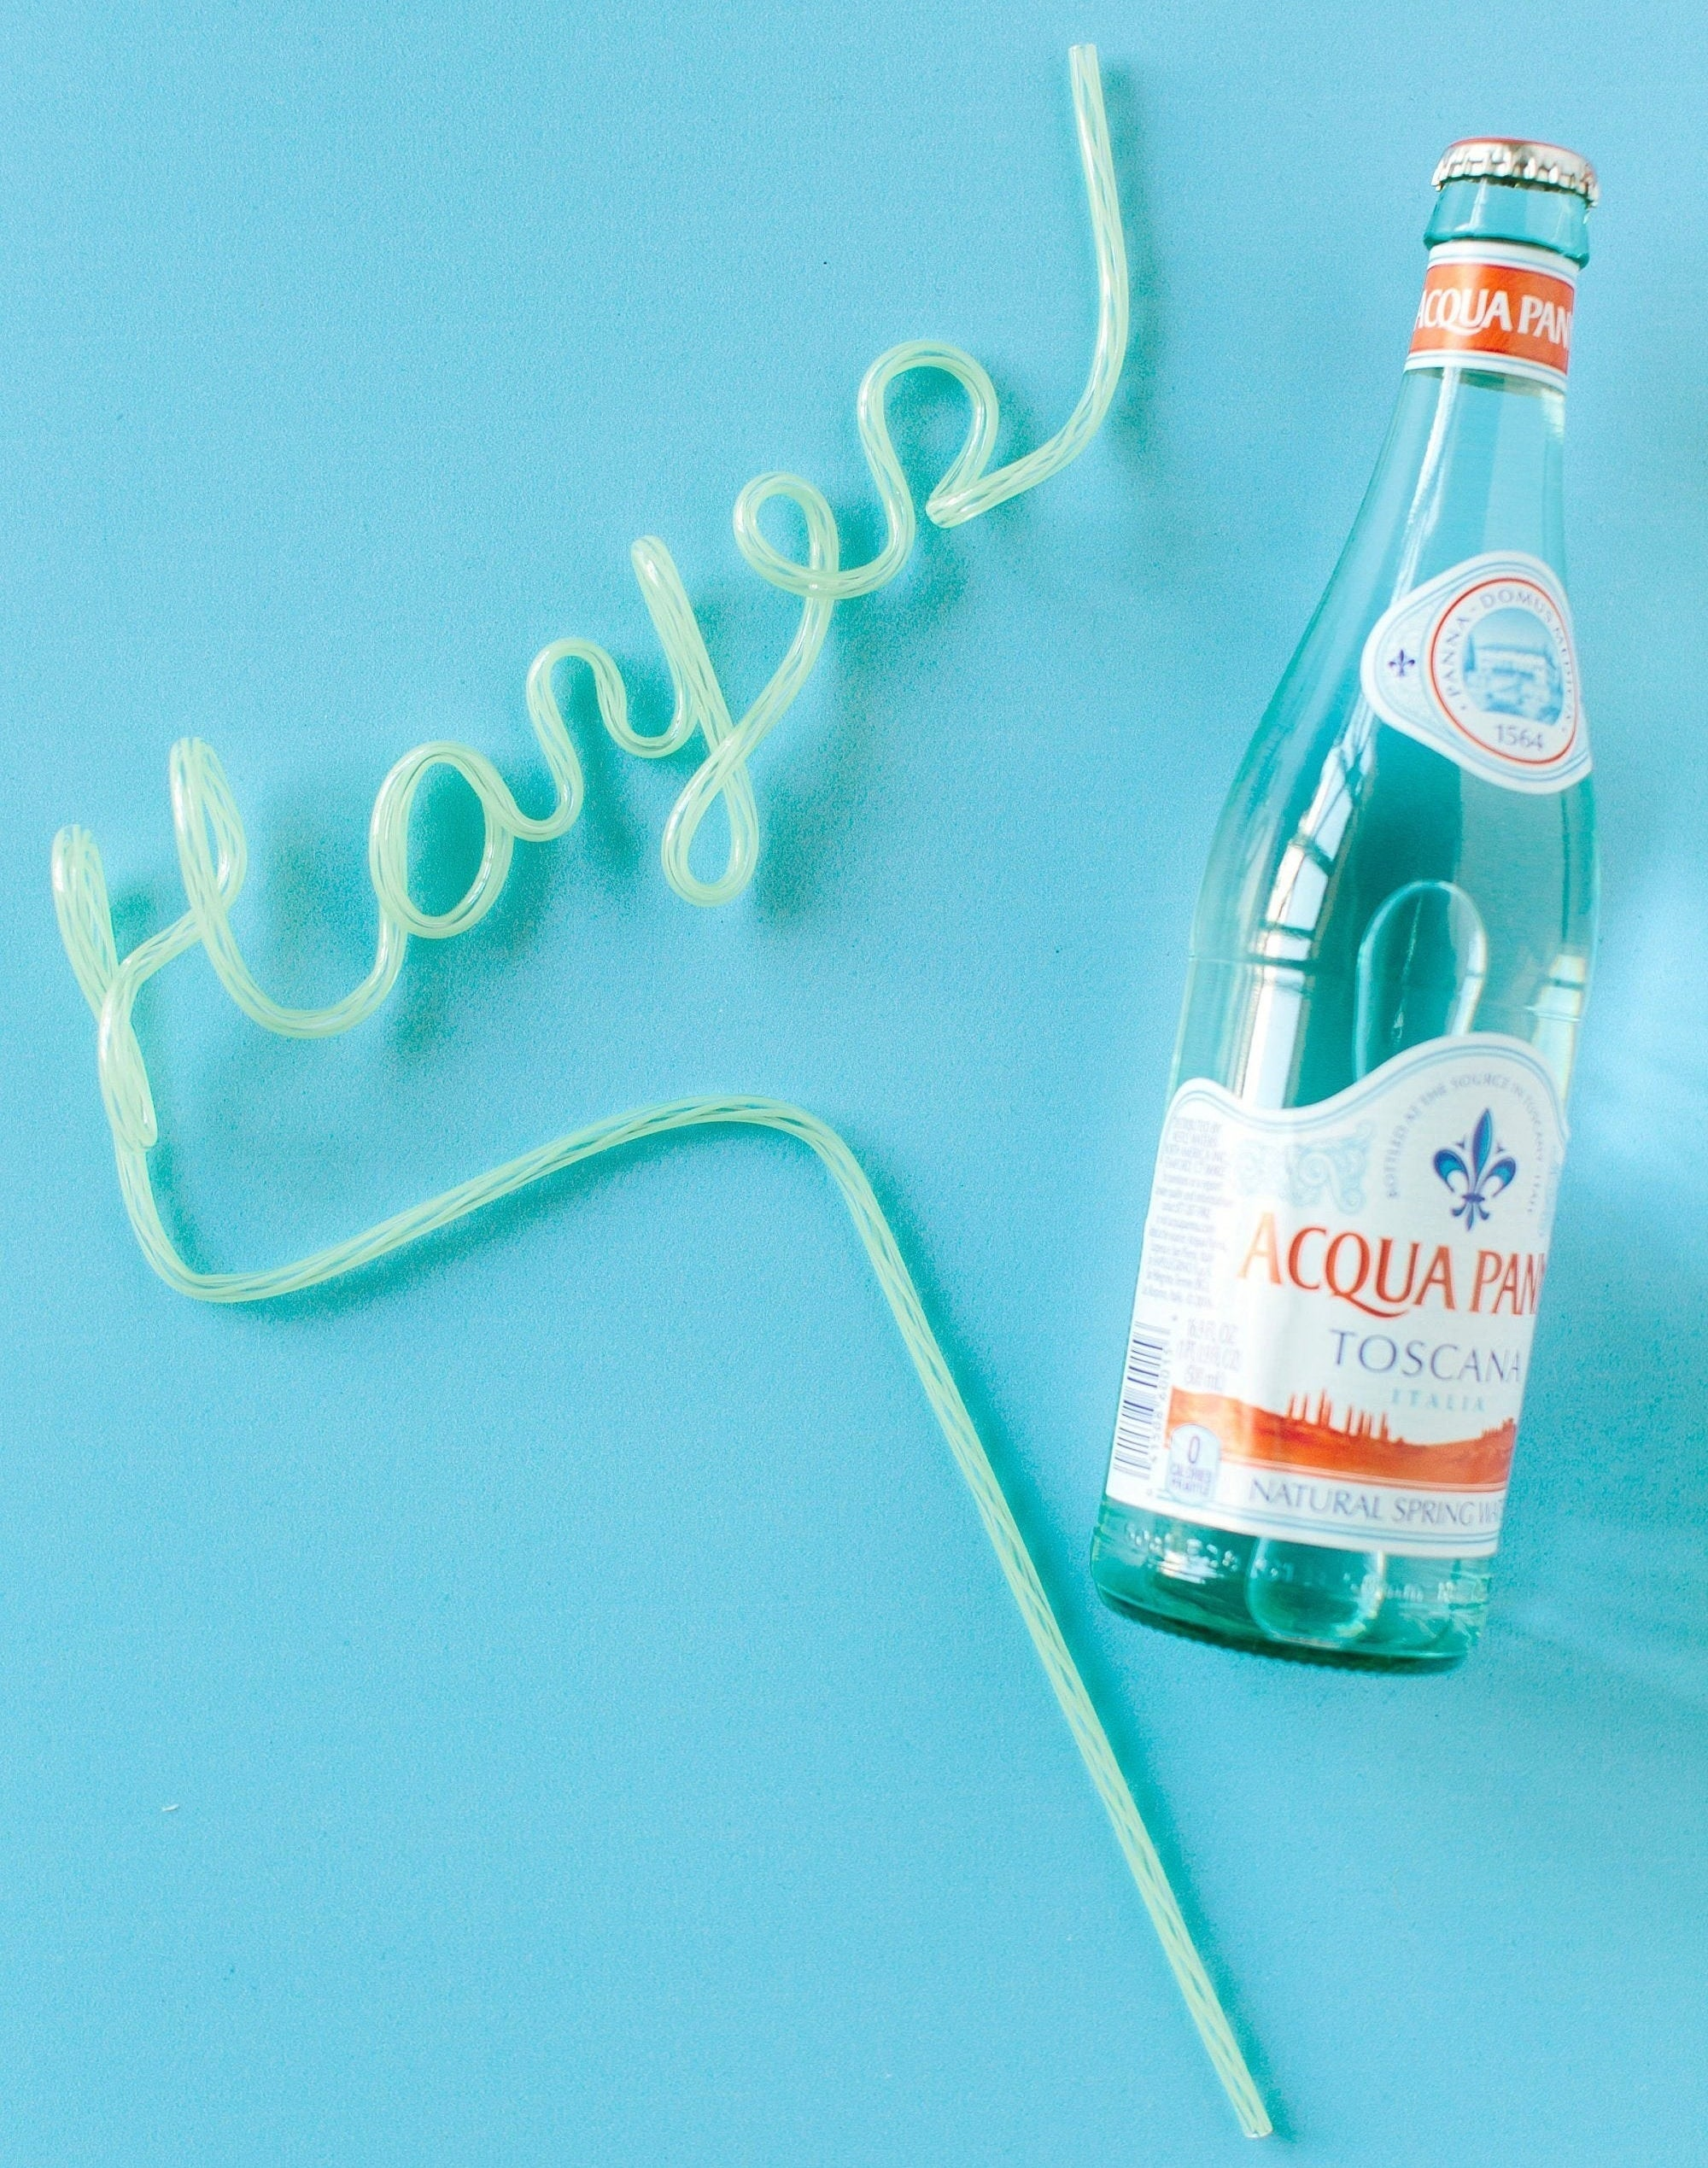 The Custom Name Straw in green.